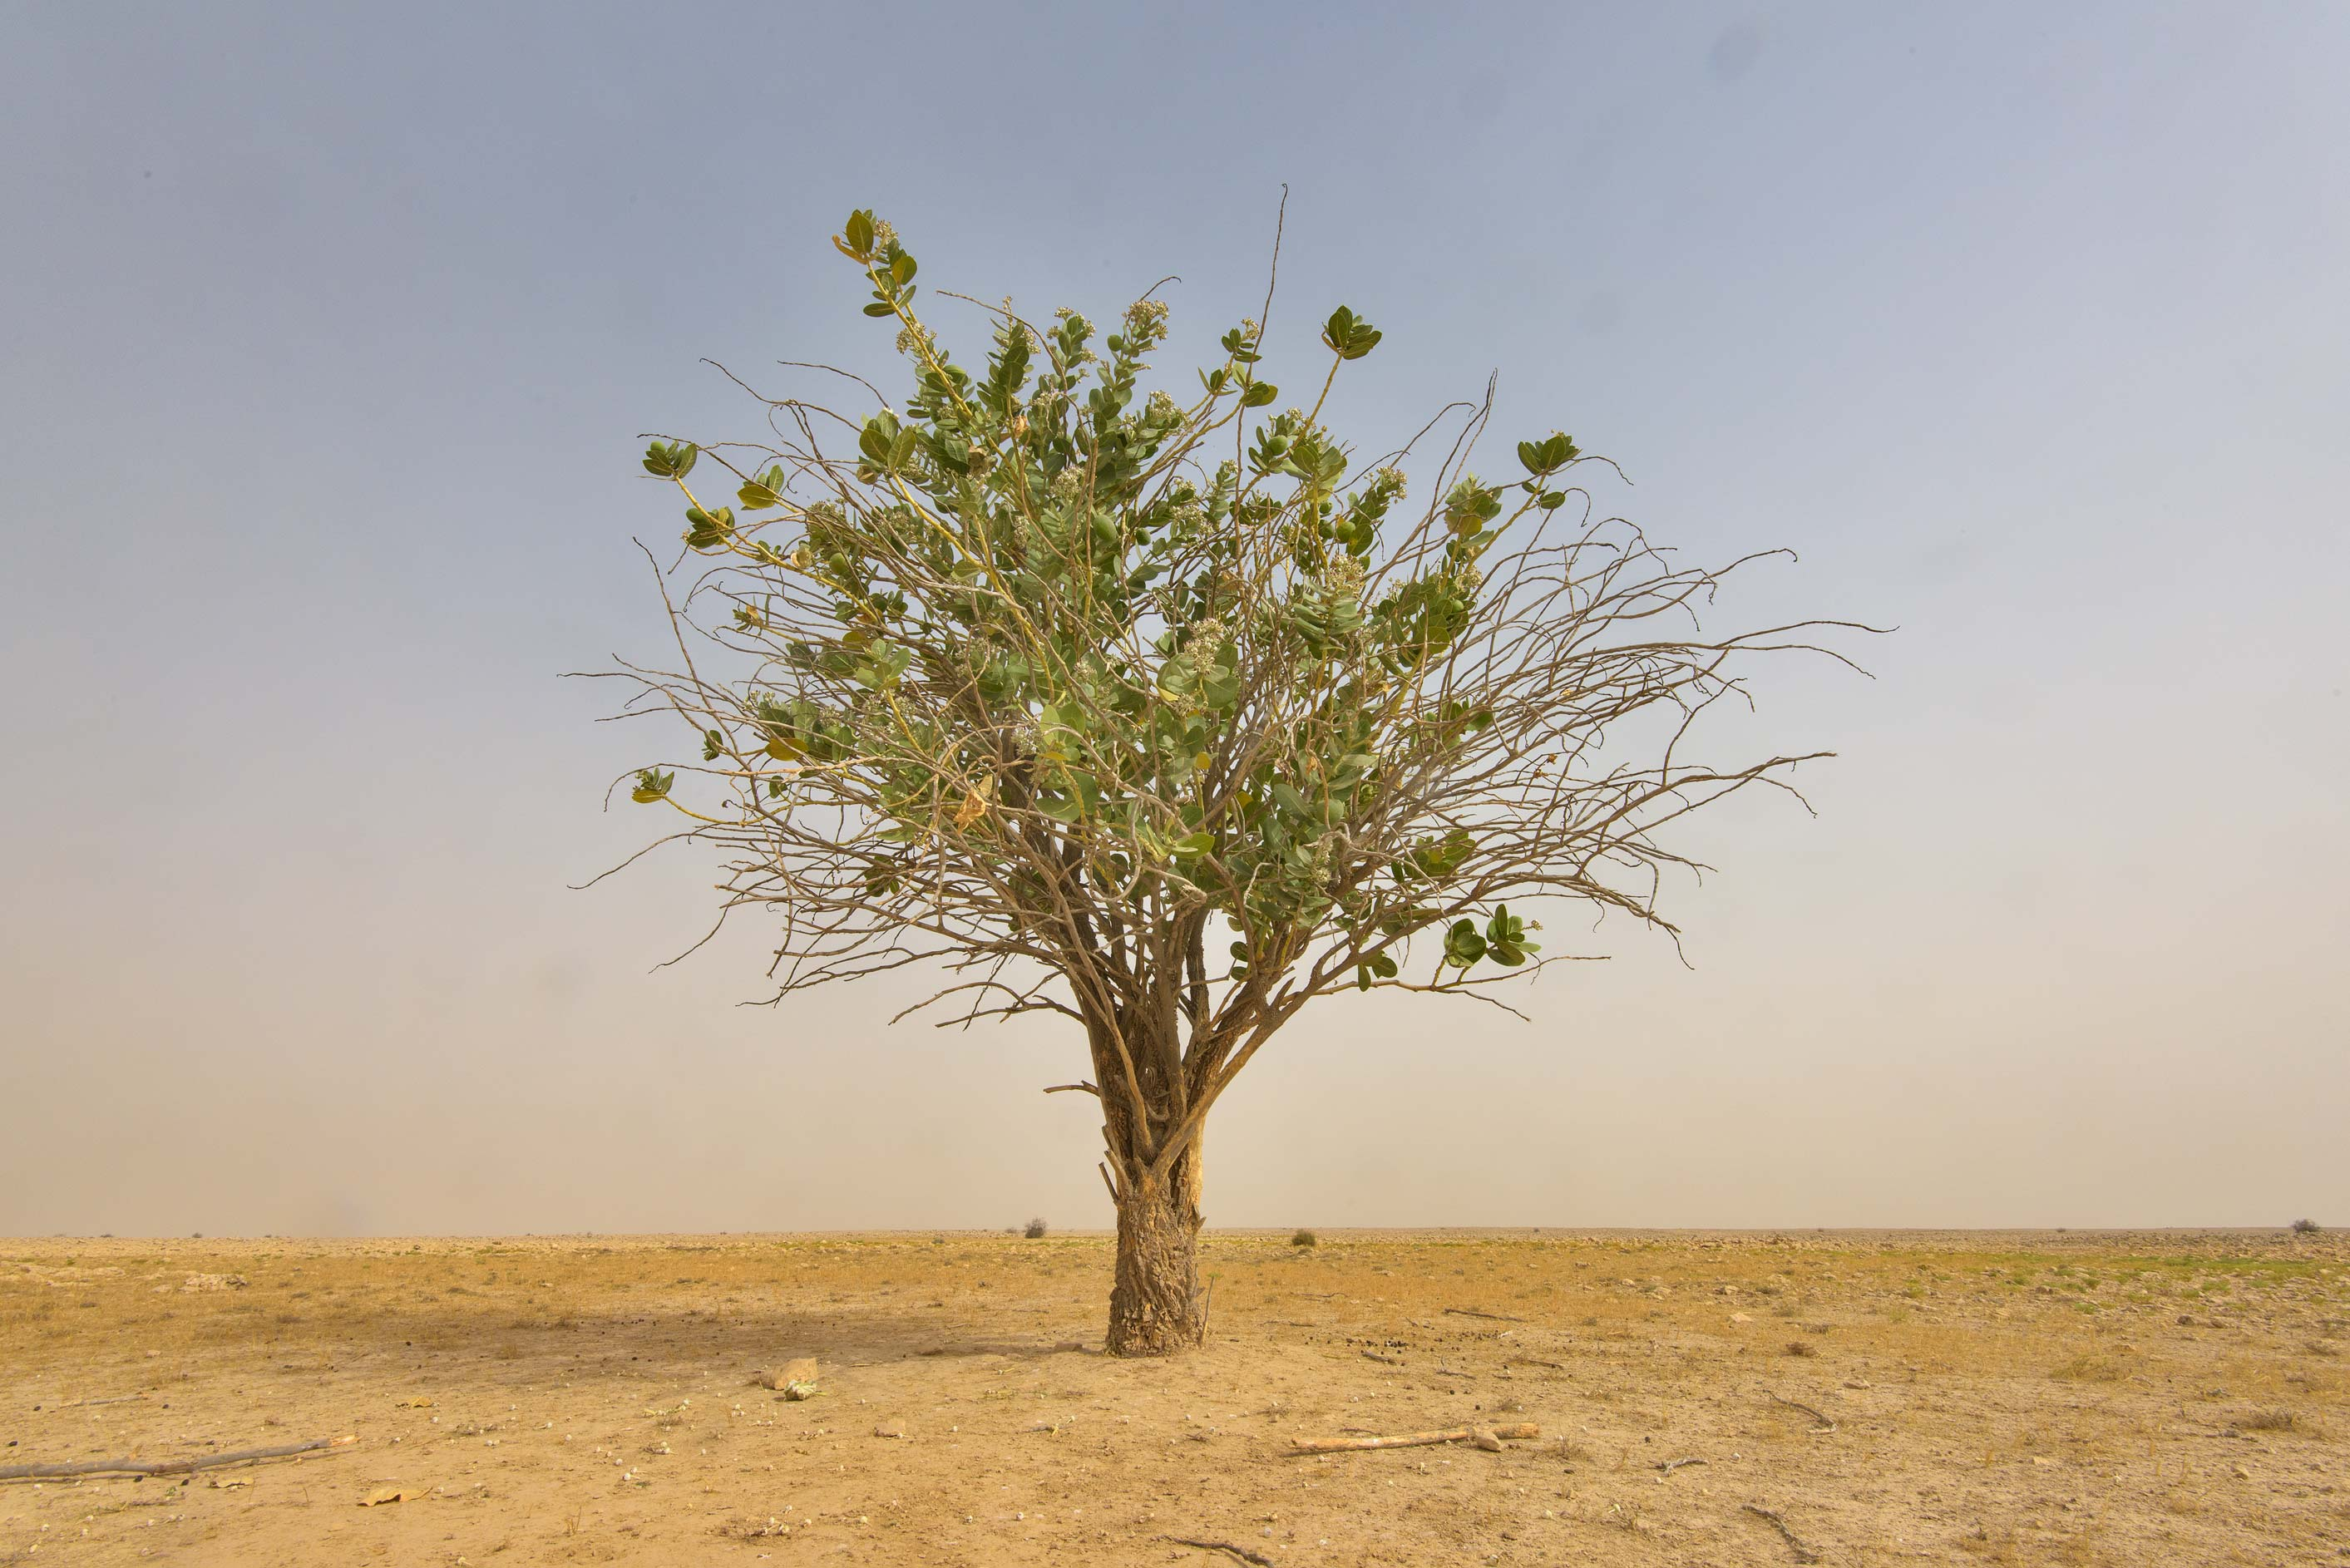 Solitary tree of Sodom Apple (Calotropis procera...western coast, Ash Shamal area. Qatar